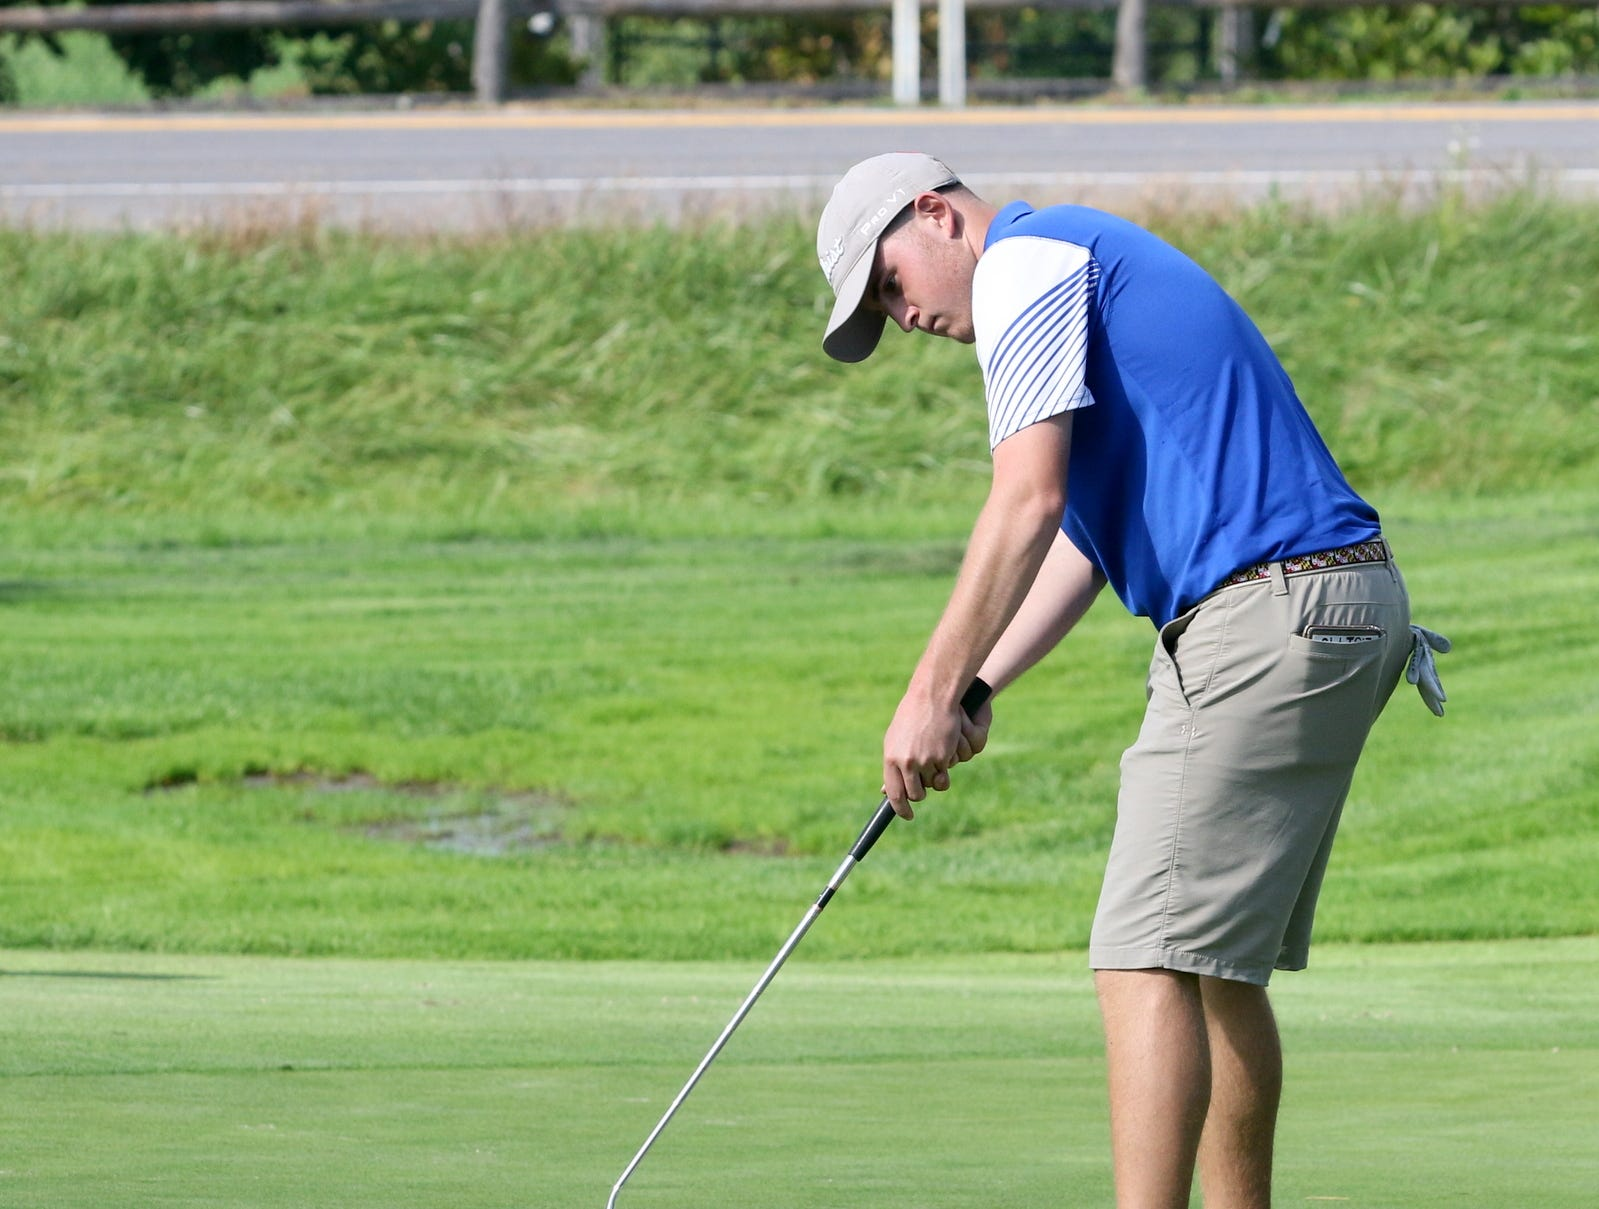 Medalist Evan Sitts of Oneonta makes a birdie putt on the 15th hole of the STAC championships Oct. 9, 2018 at Robert Trent Jones Golf Course in Ithaca.